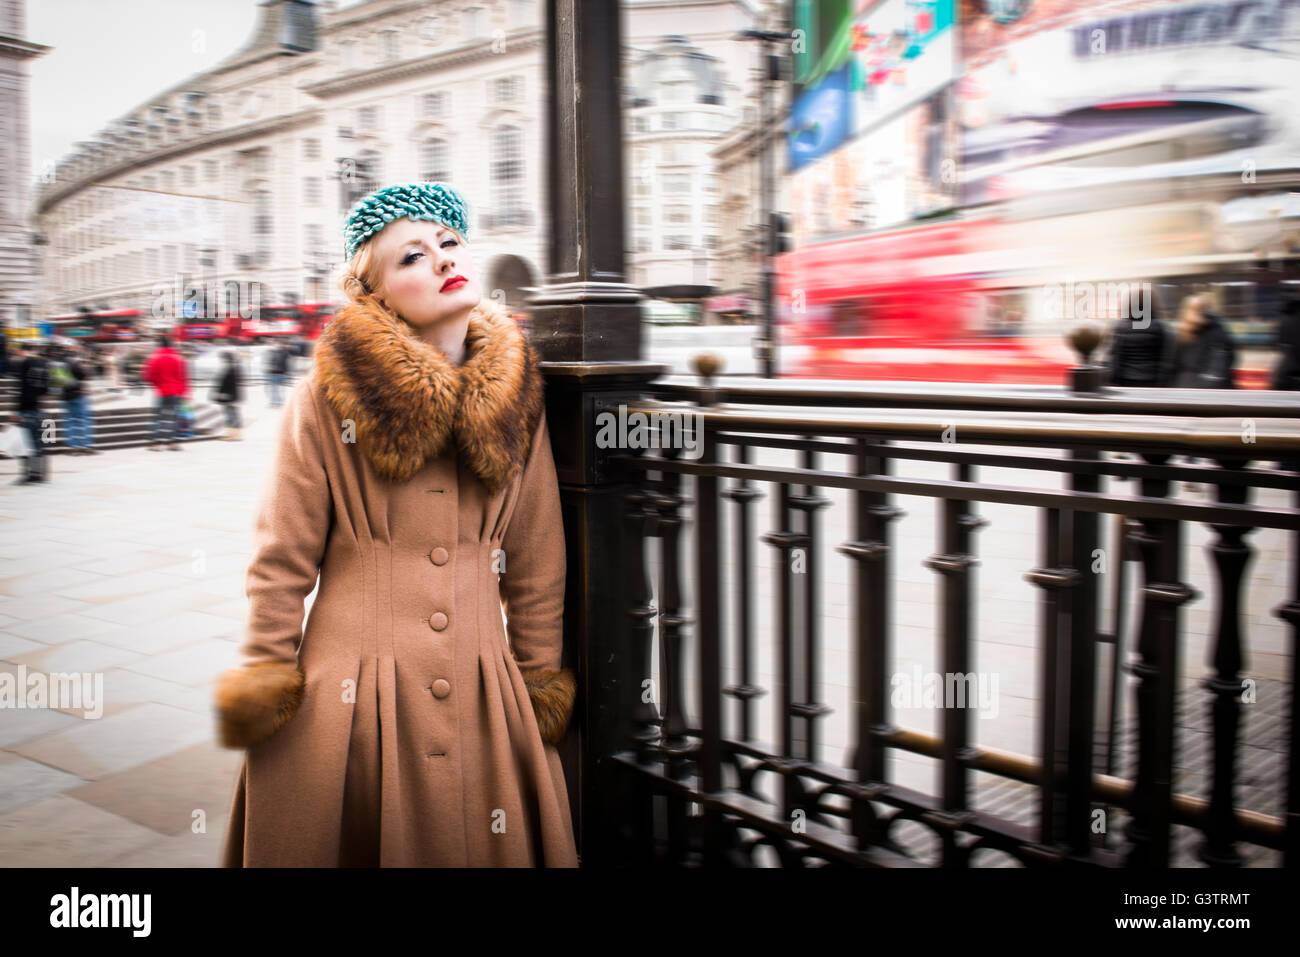 A stylish young woman dressed in 1930s style clothing standing by railings at the entrance to Piccadilly Circus - Stock Image